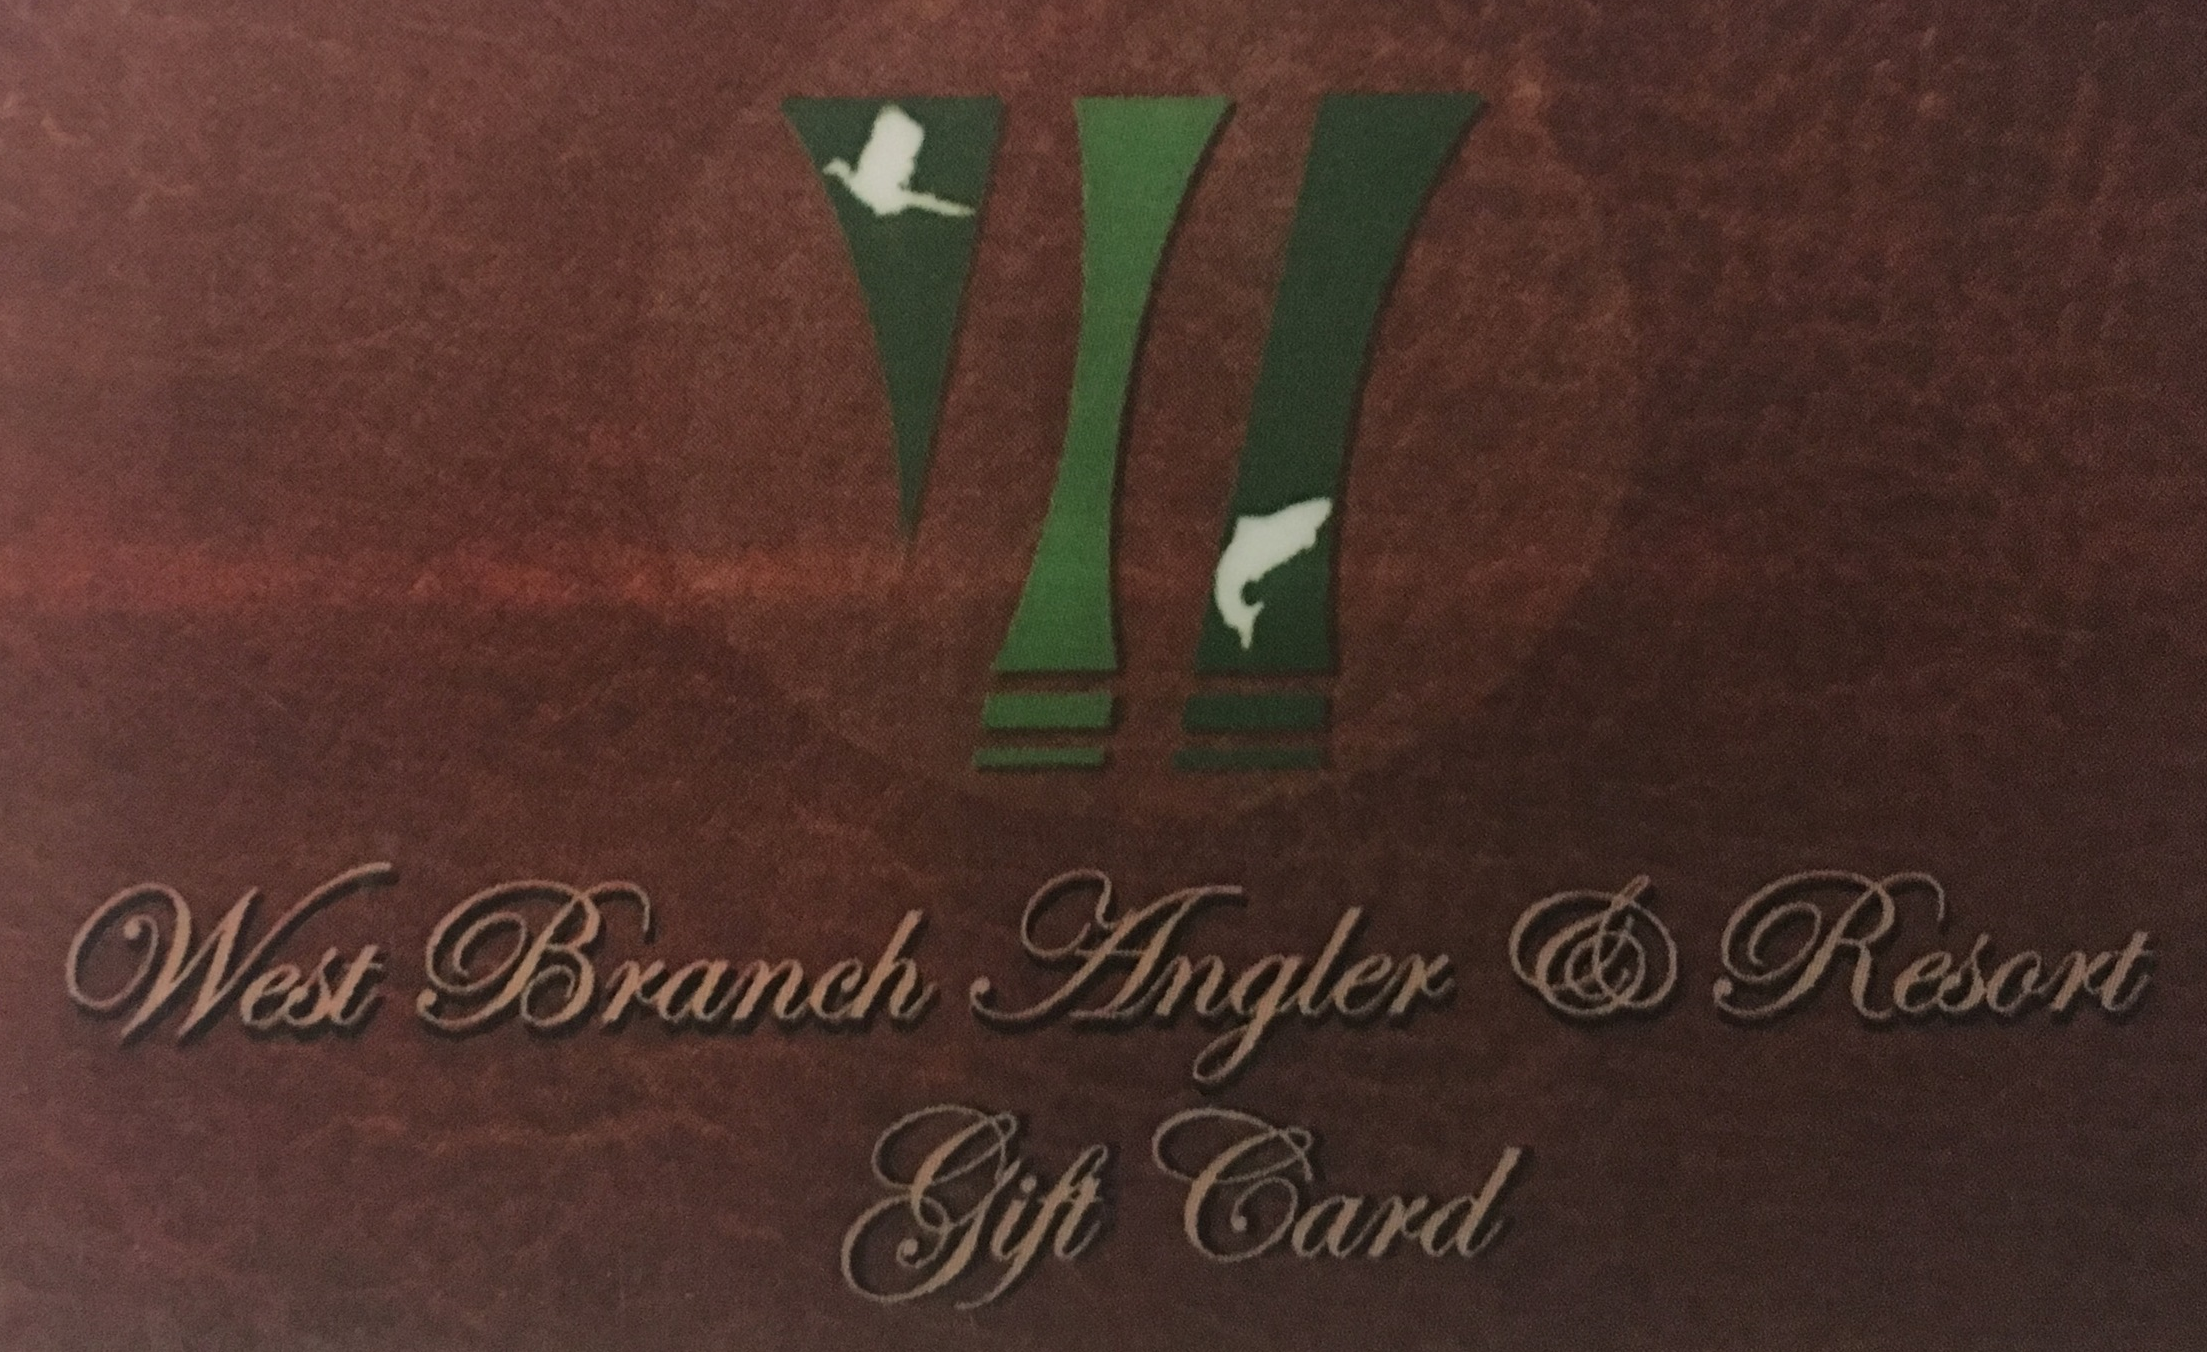 Click here to order your West Branch Angler gift card!